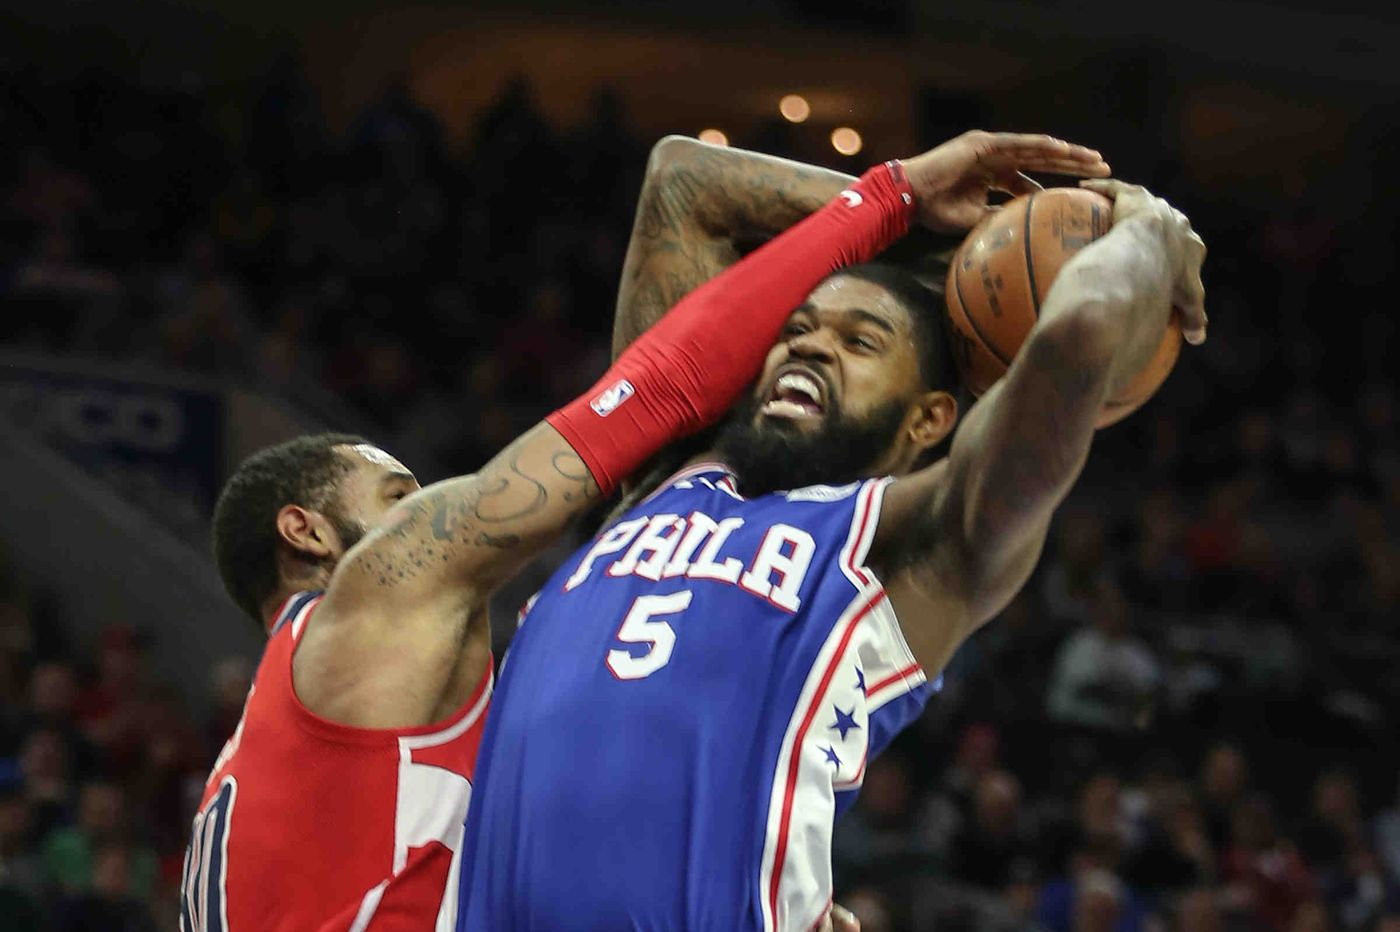 Sixers' Amir Johnson keeps positive spirit by embracing G-League playing time